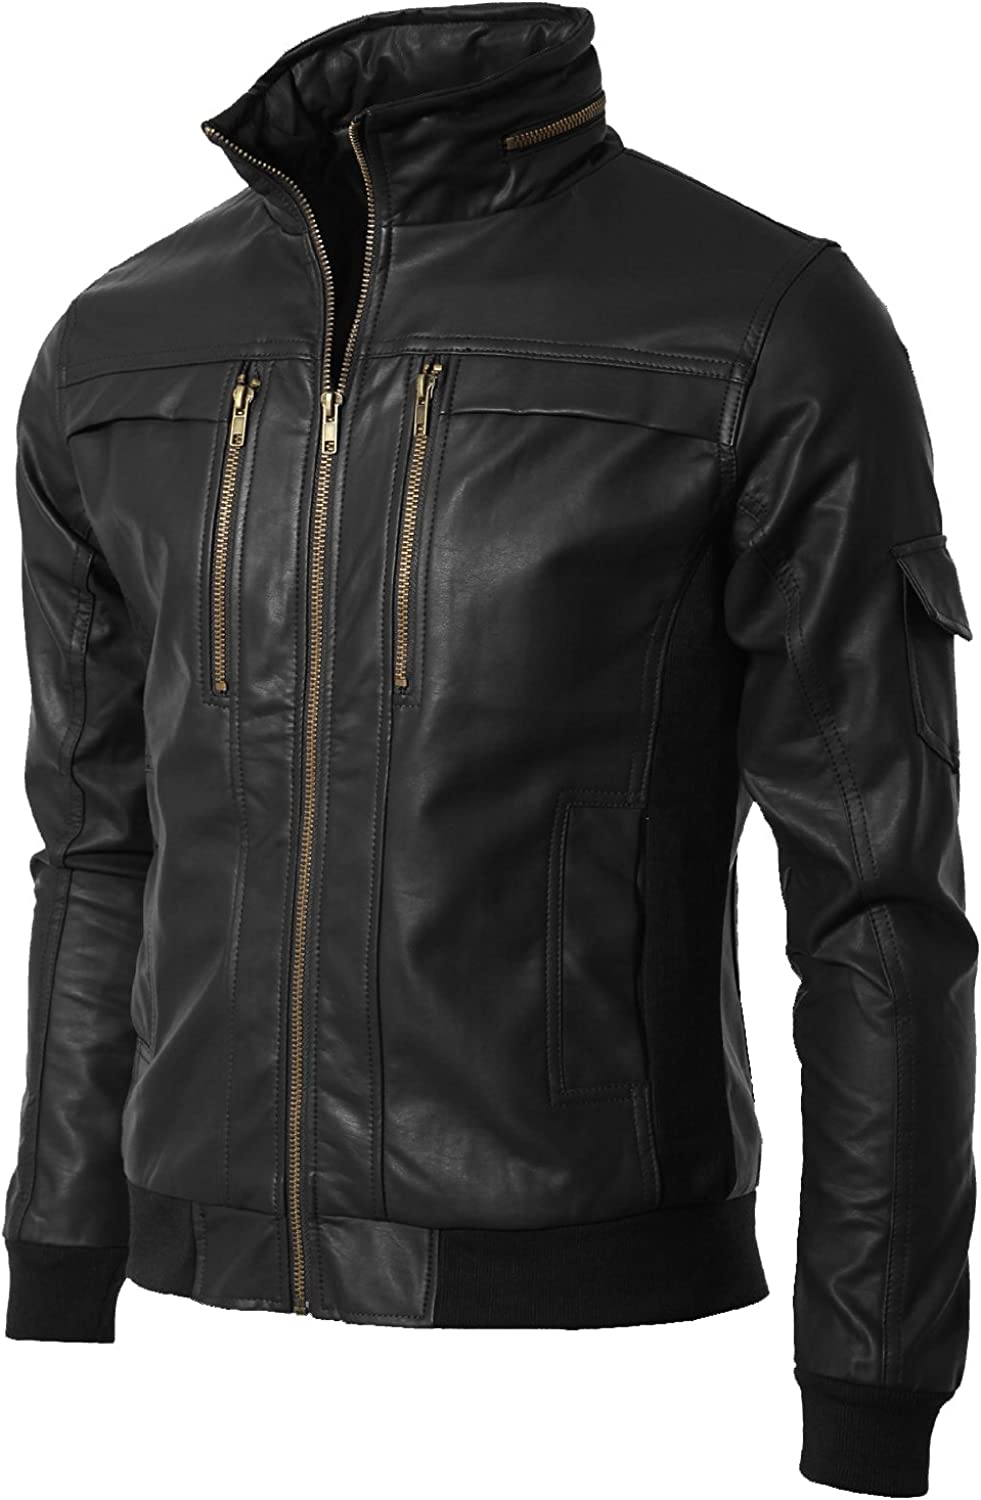 Mens Genuine Cow Leather Jacket Slim Fit Motorcycle Jacket LTC149